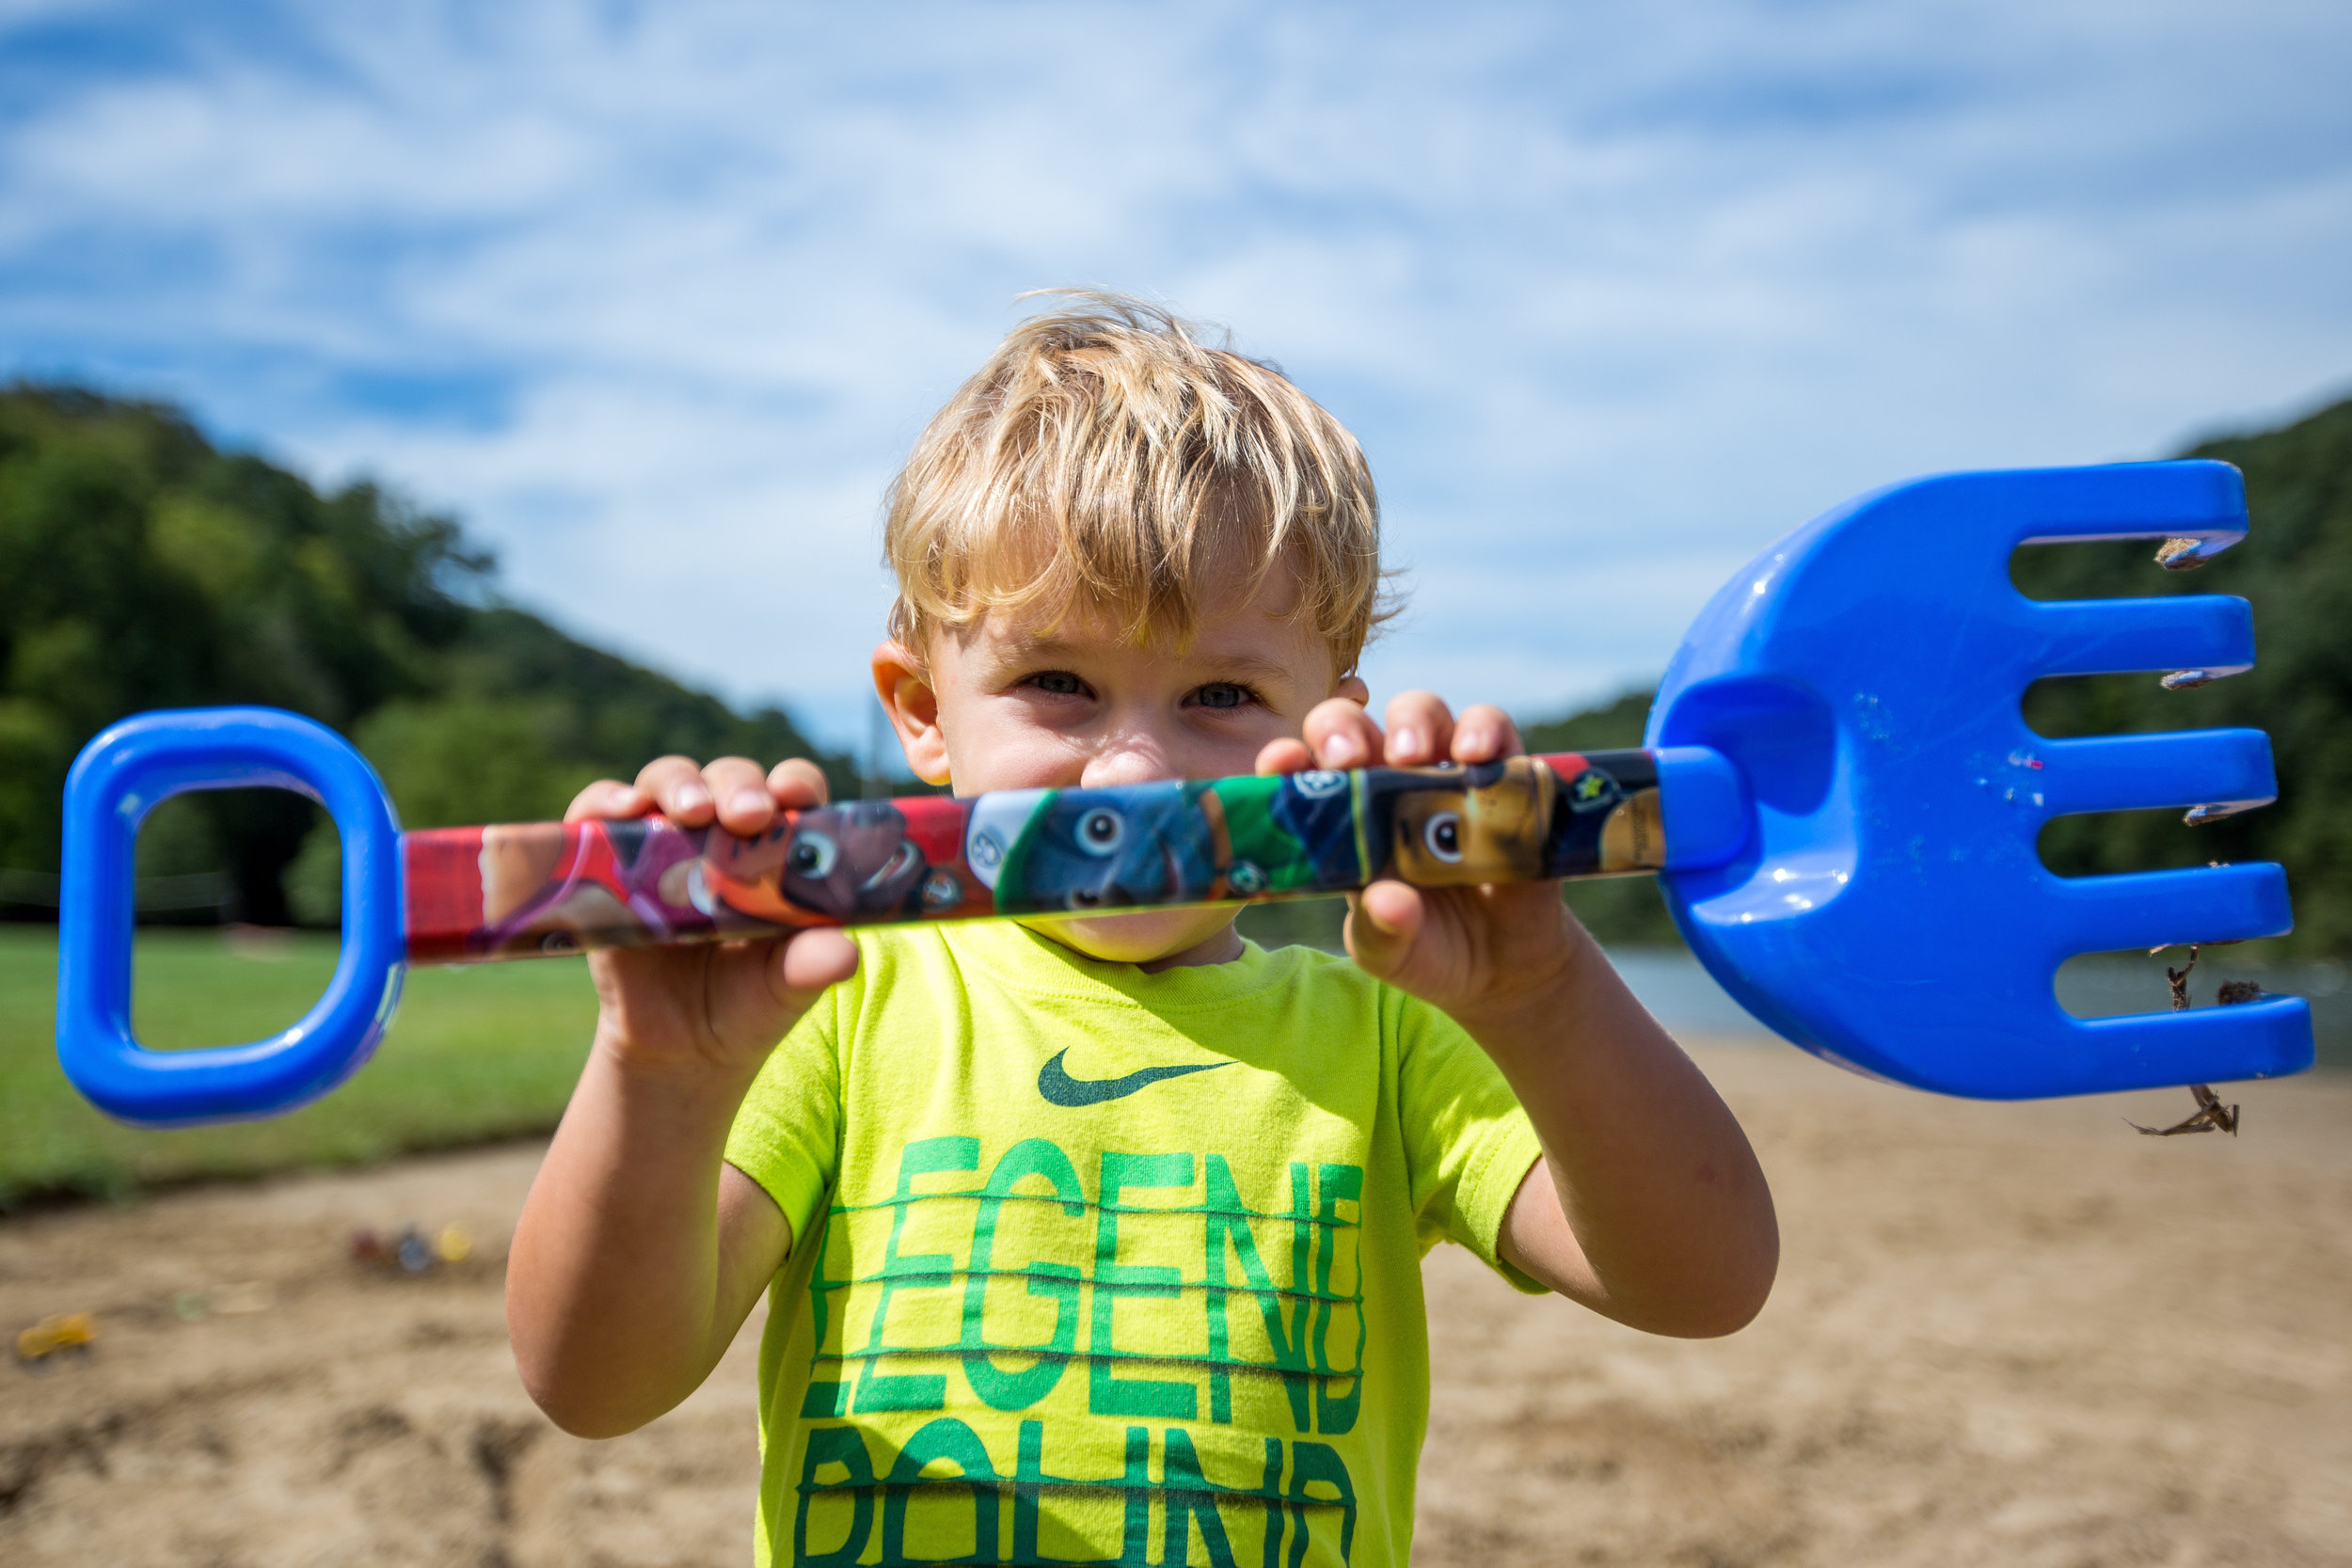 Jackson Slyder, 2, tries to hide behind his plastic rake at Raccoon Creek State Park on Thursday afternoon.